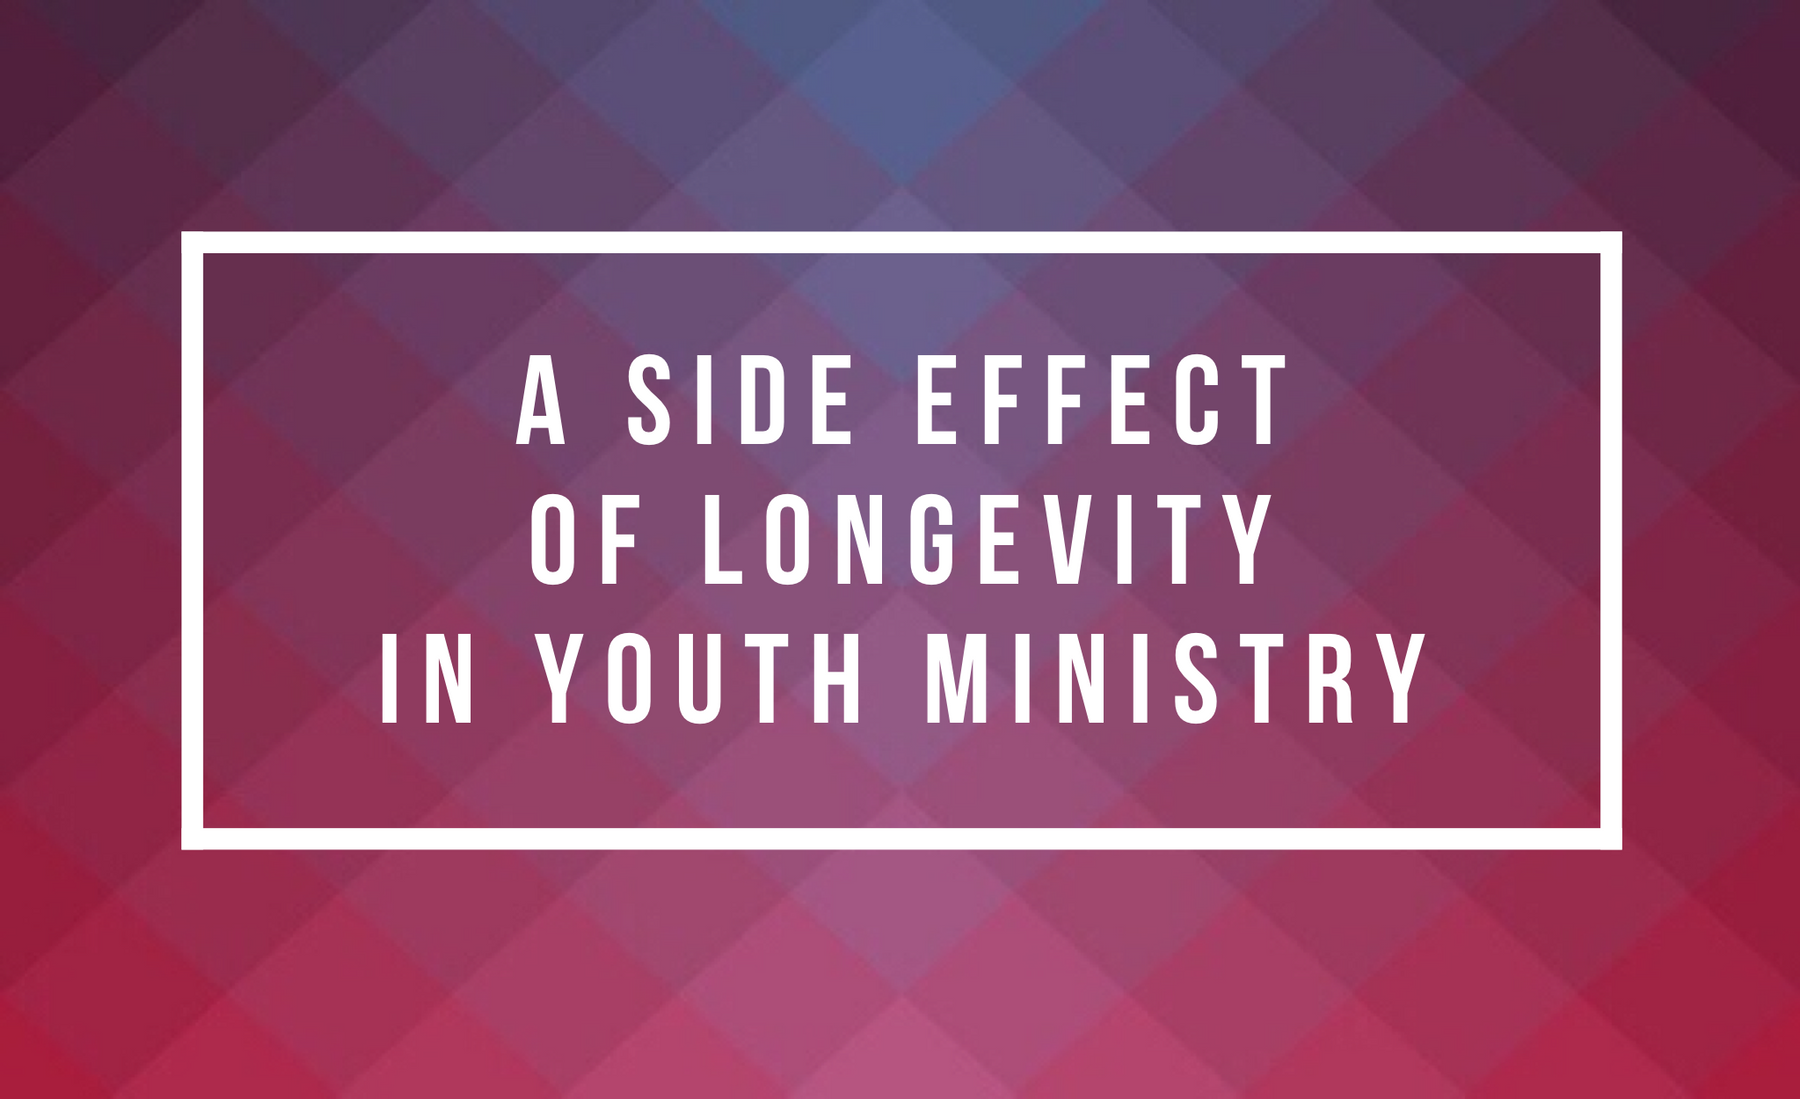 A Side Effect Of Longevity In Youth Ministry